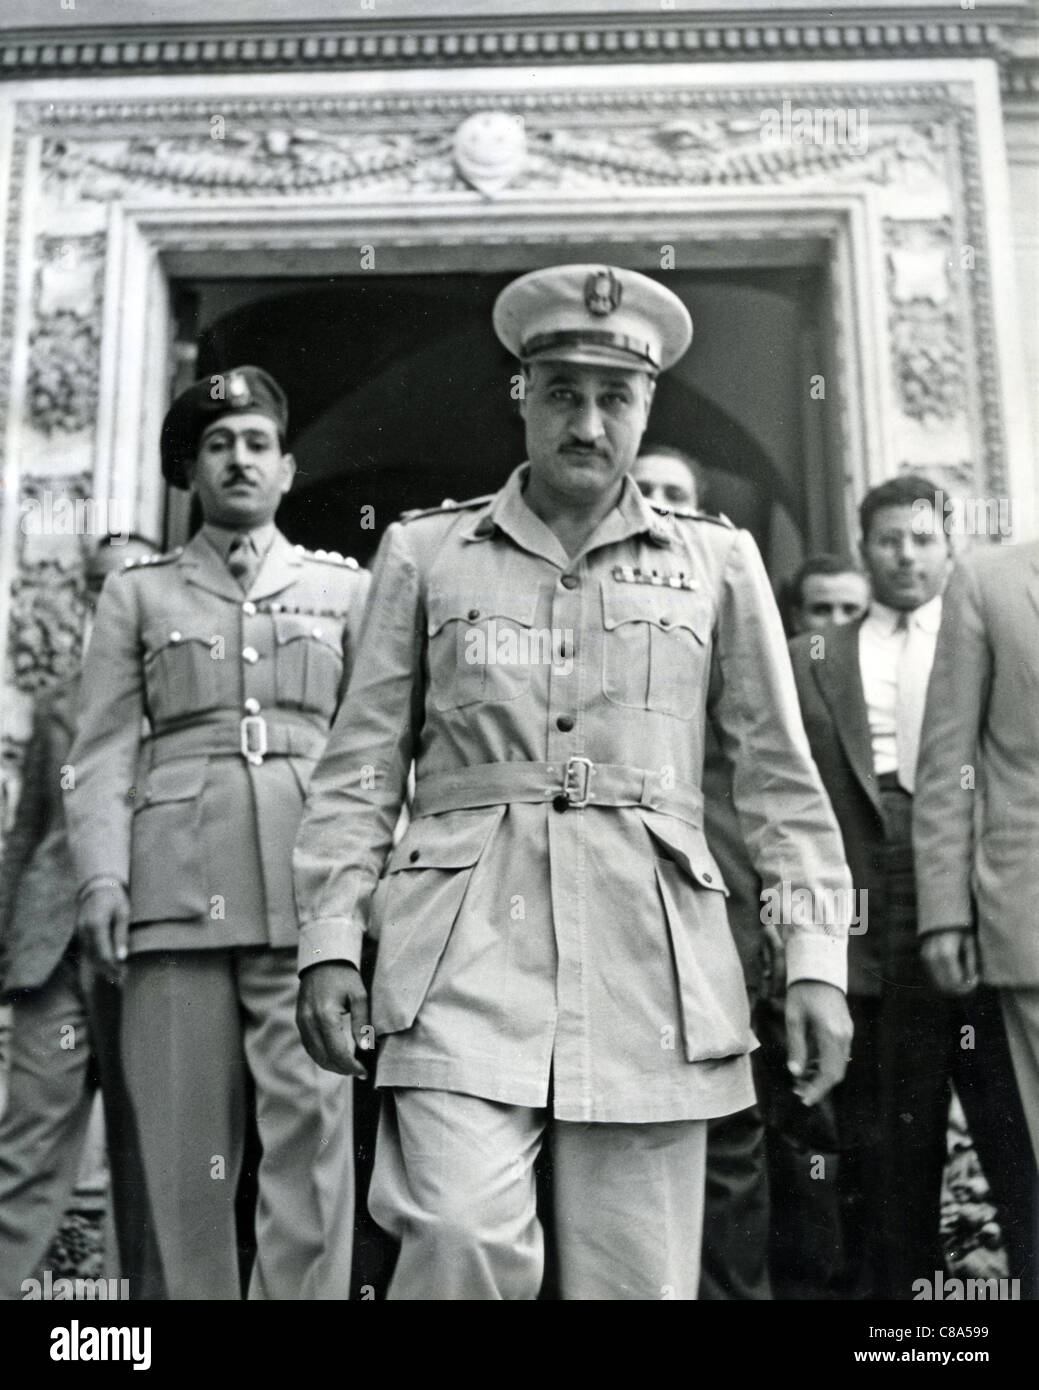 GAMAL ABDEL NASSER (1918-1970) second President of Egypt about 1952 - Stock Image